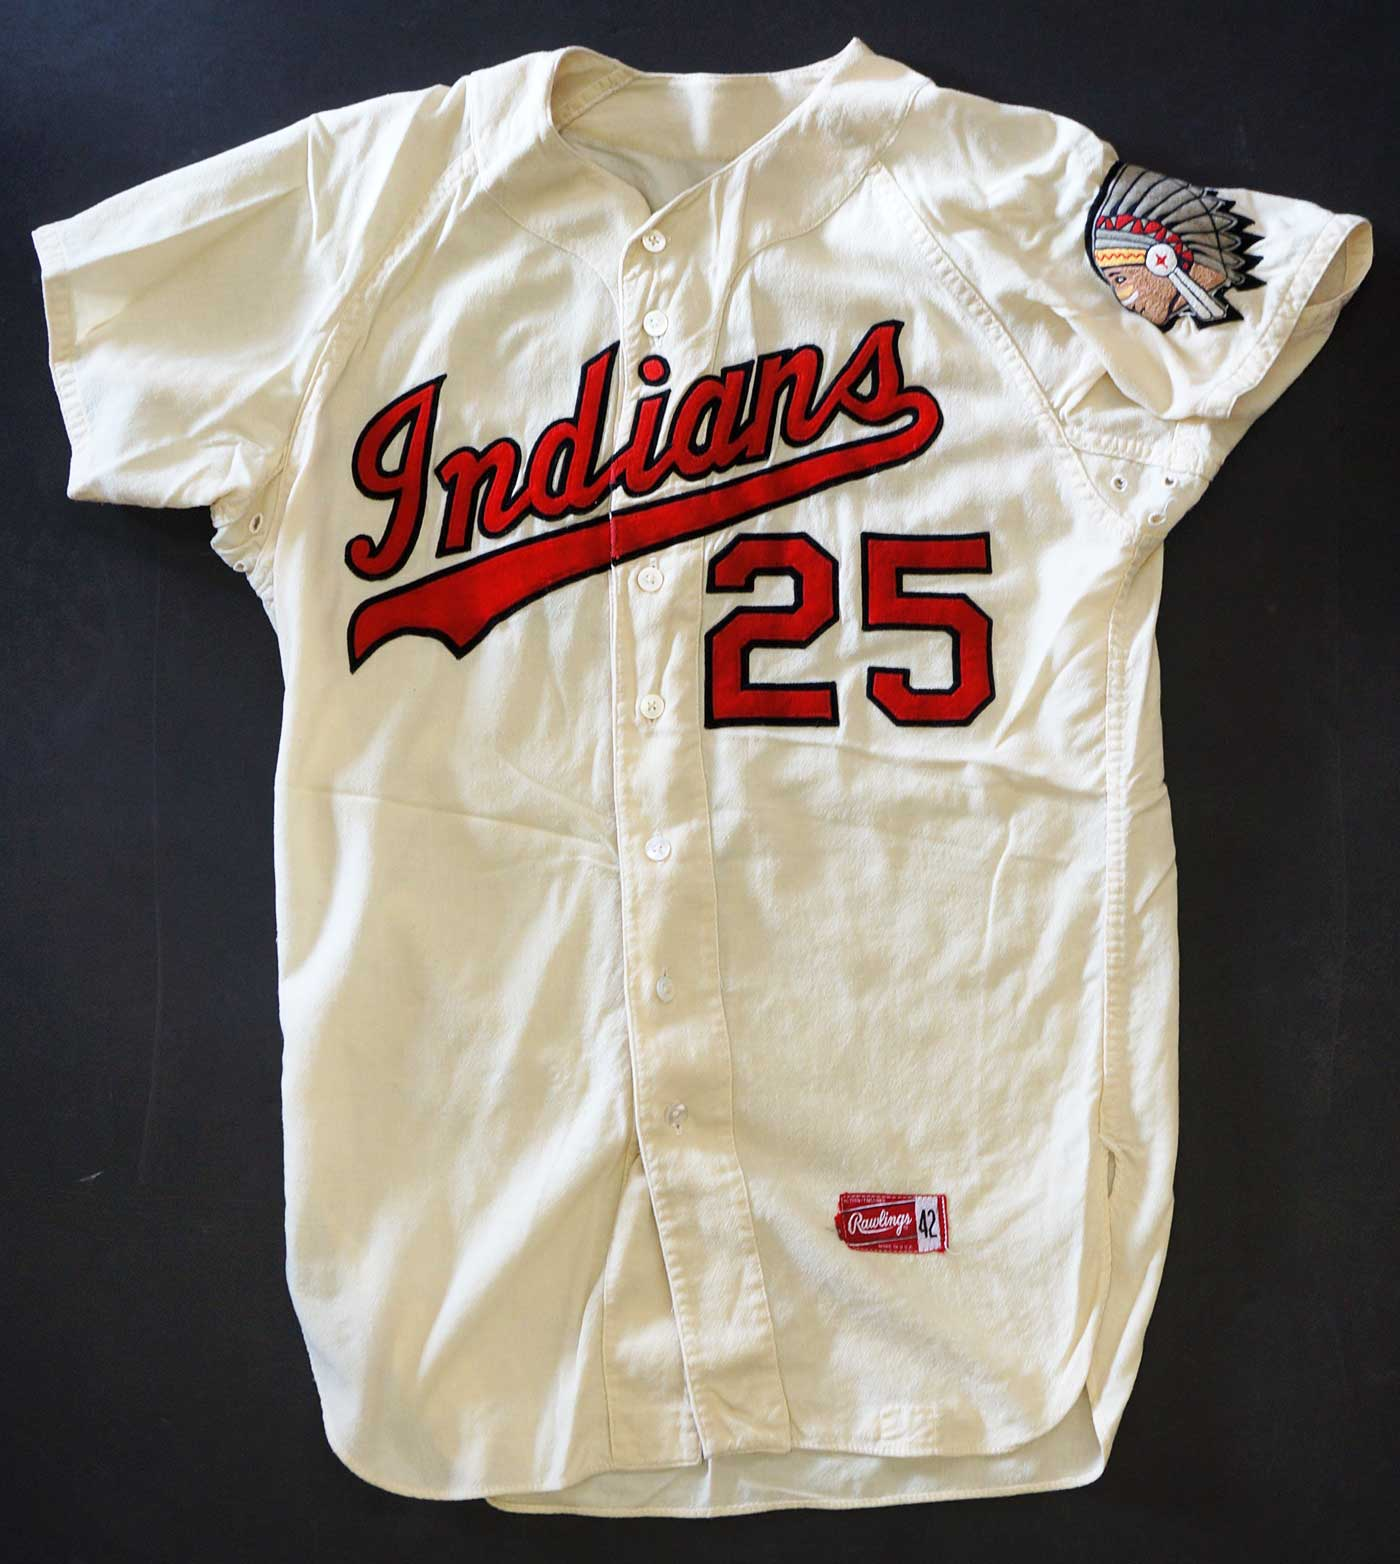 Spokane Indians Vintage Game-Used Home Jersey